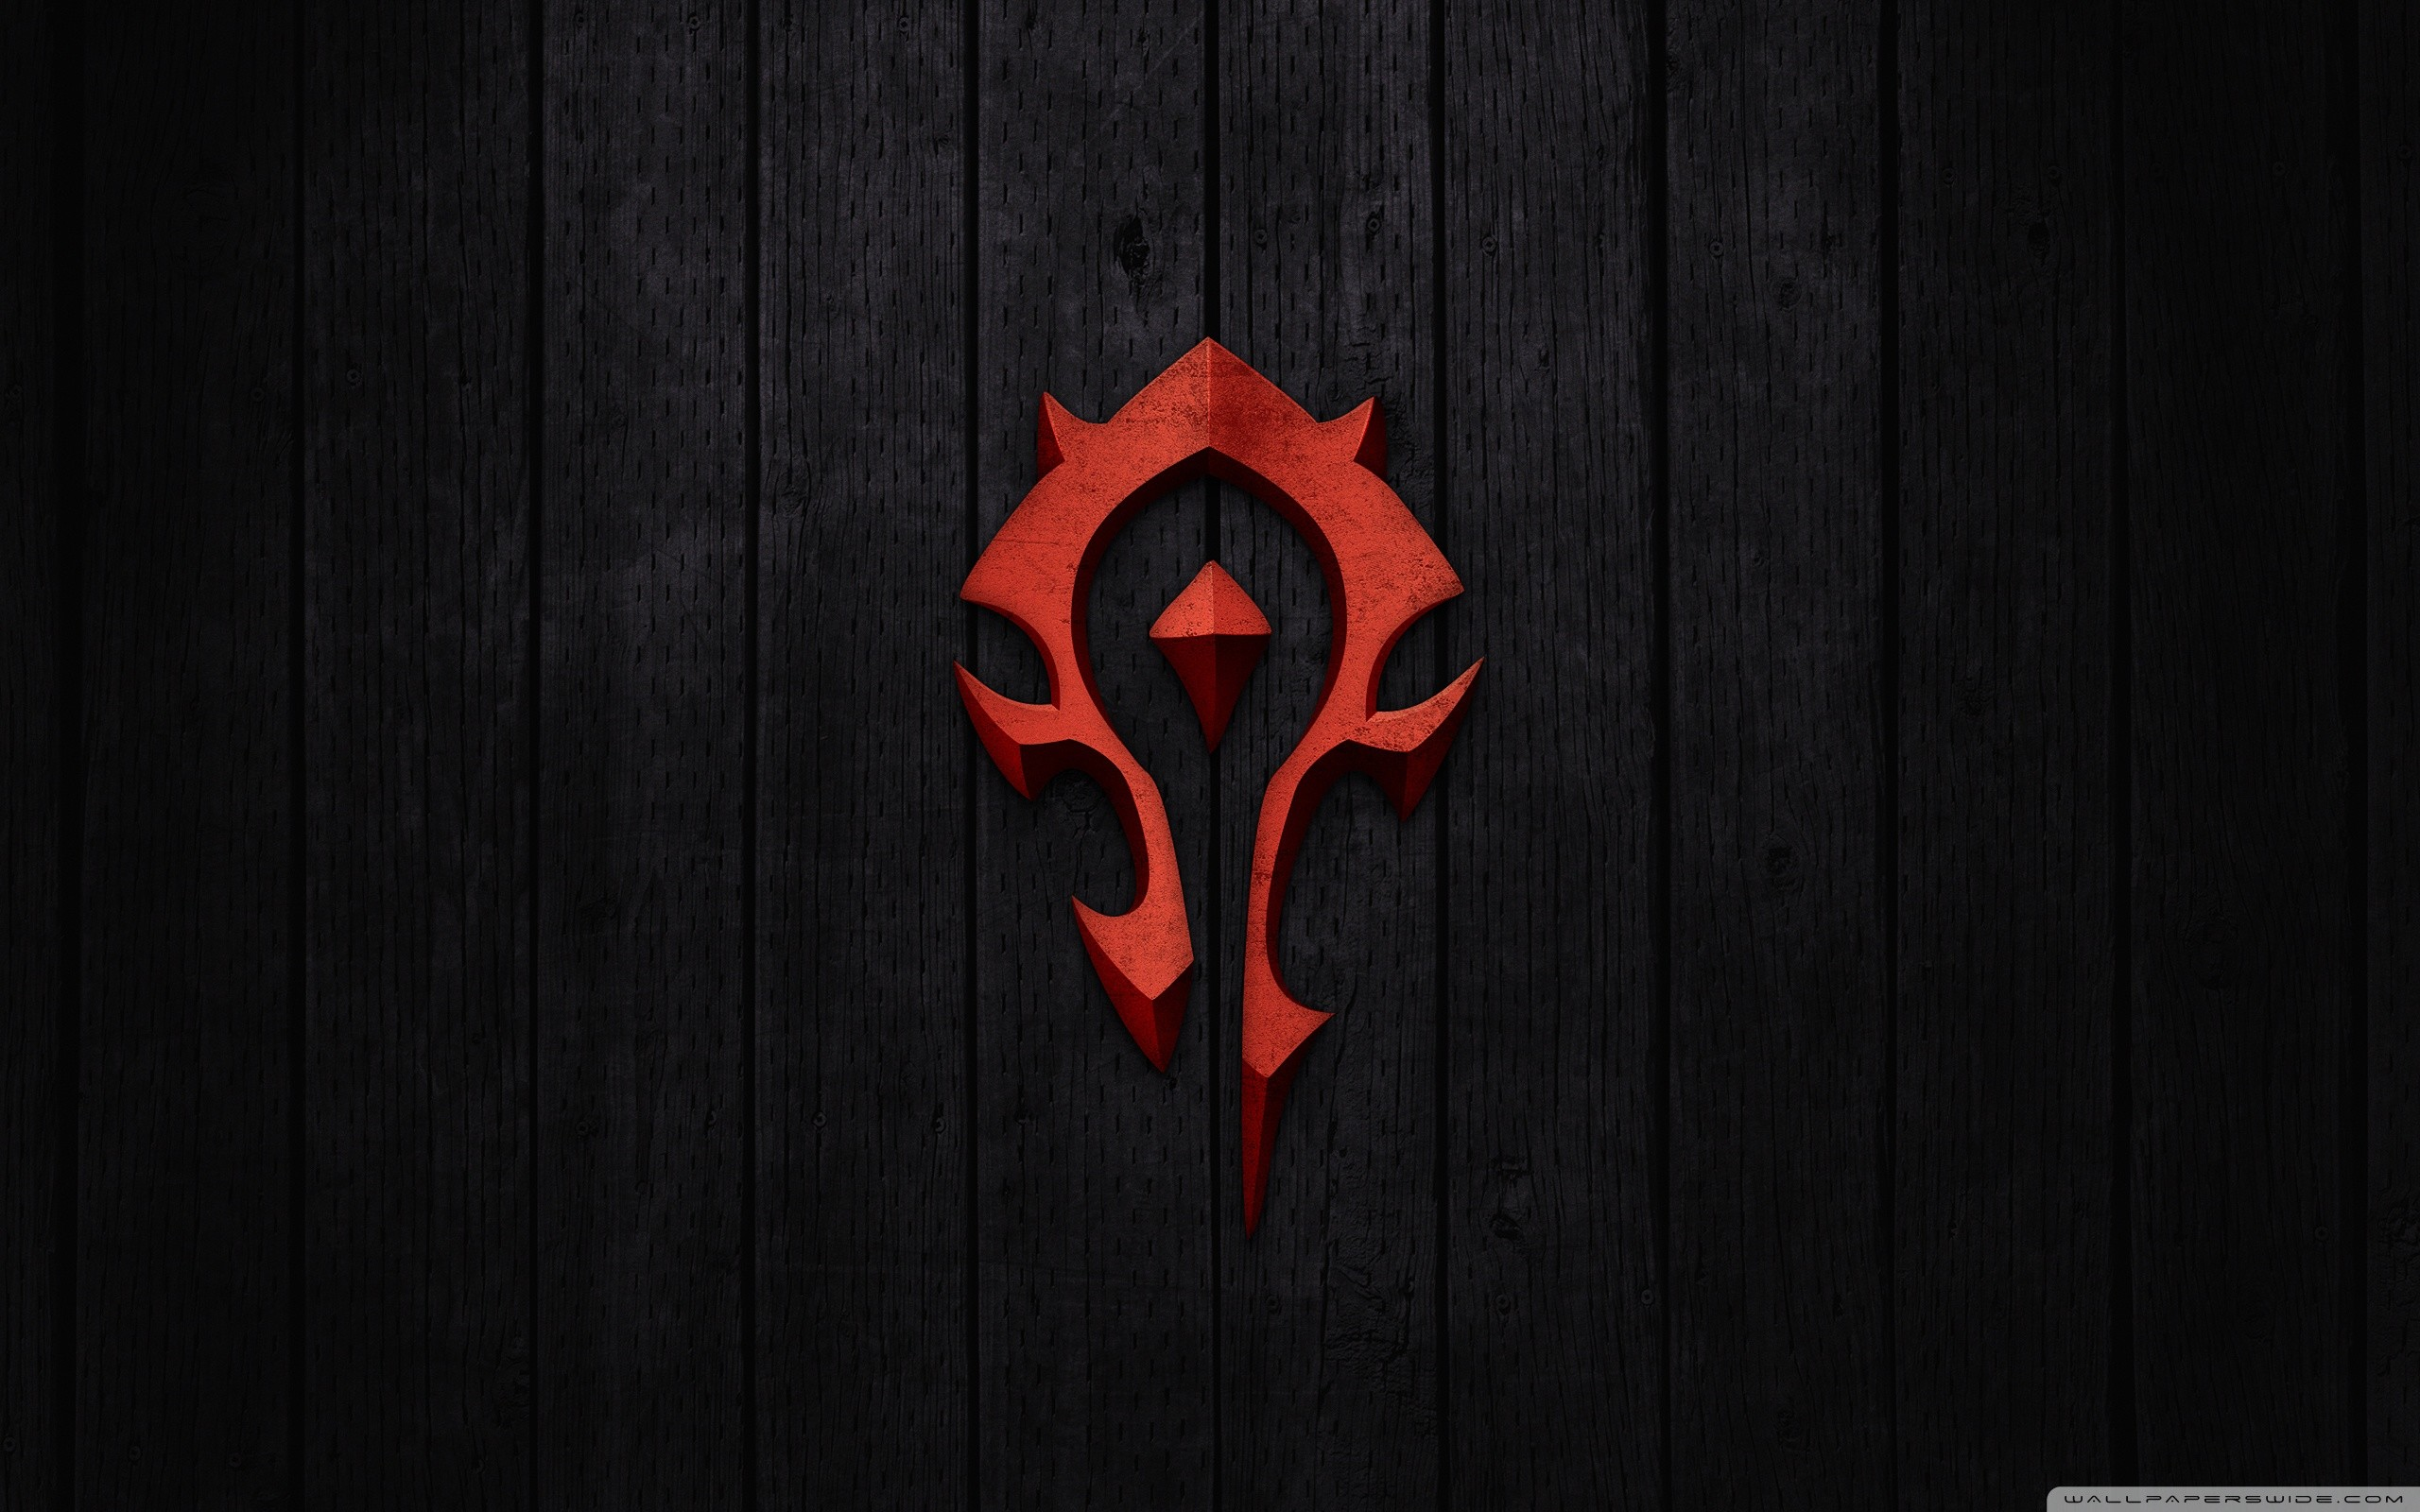 2560x1600 World of Warcraft - Horde Sign HD Wide Wallpaper for Widescreen